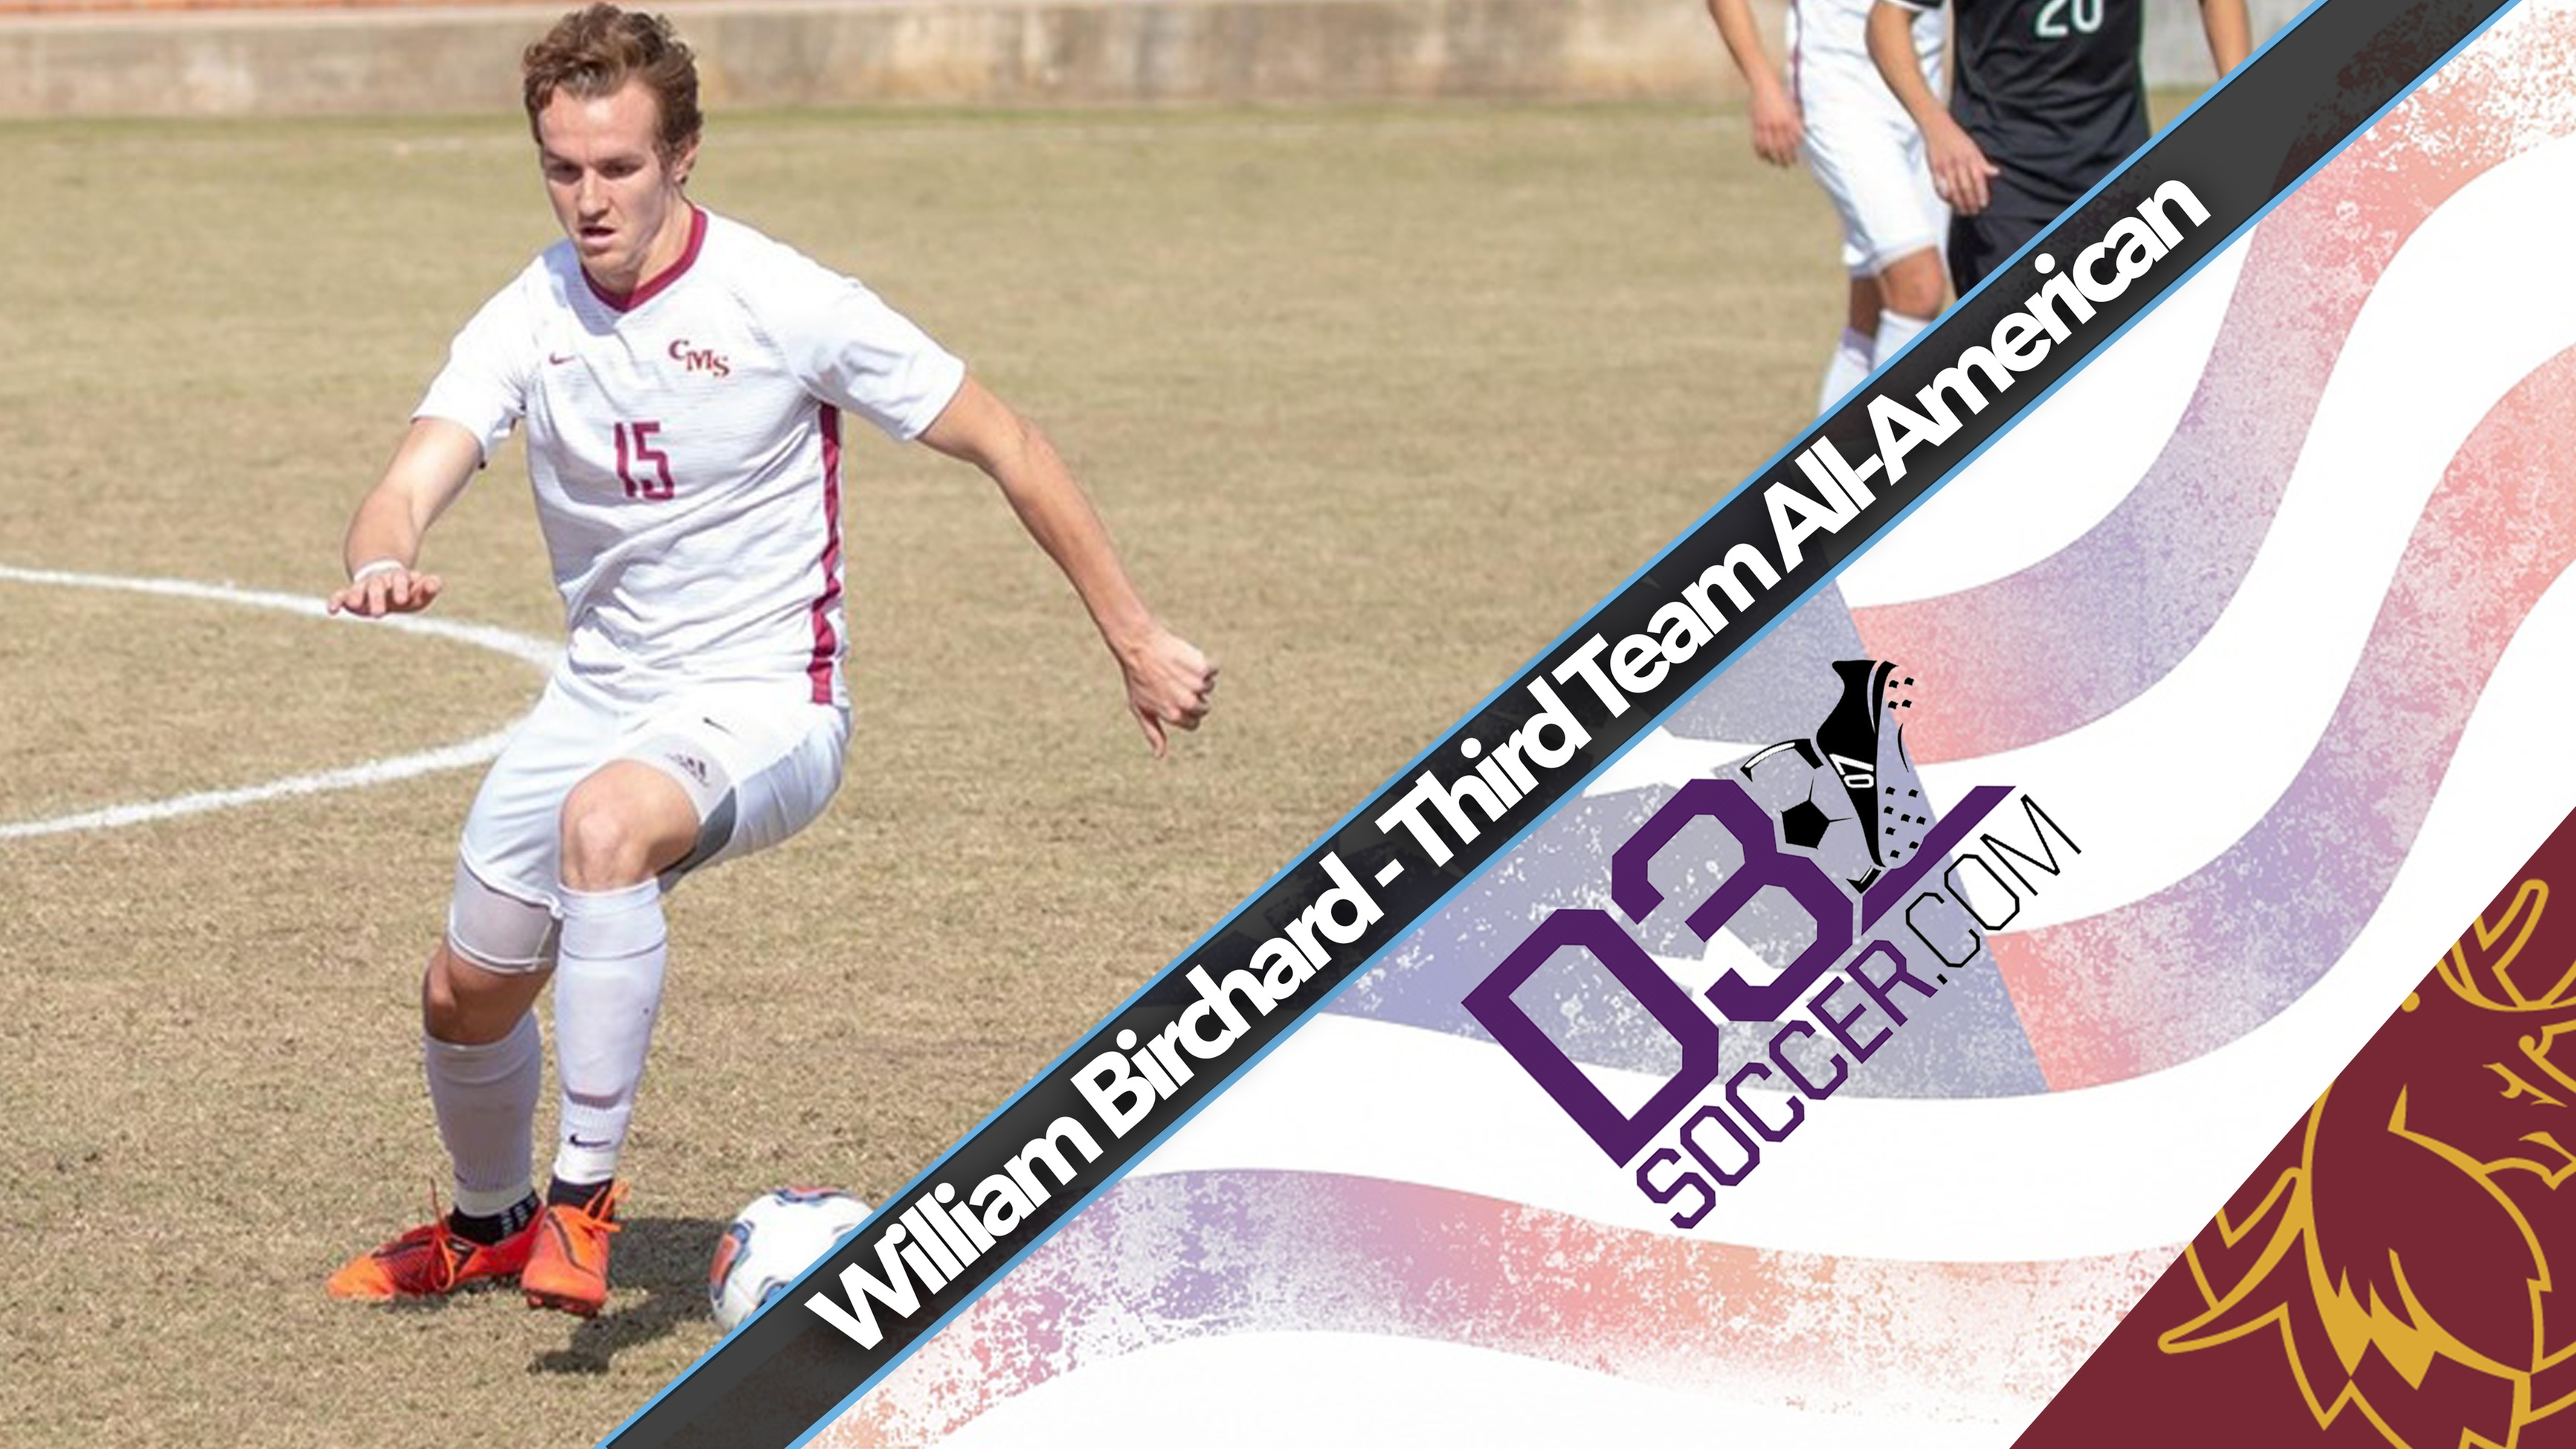 CMS: Birchard Named Third-Team All-American by D3soccer.com